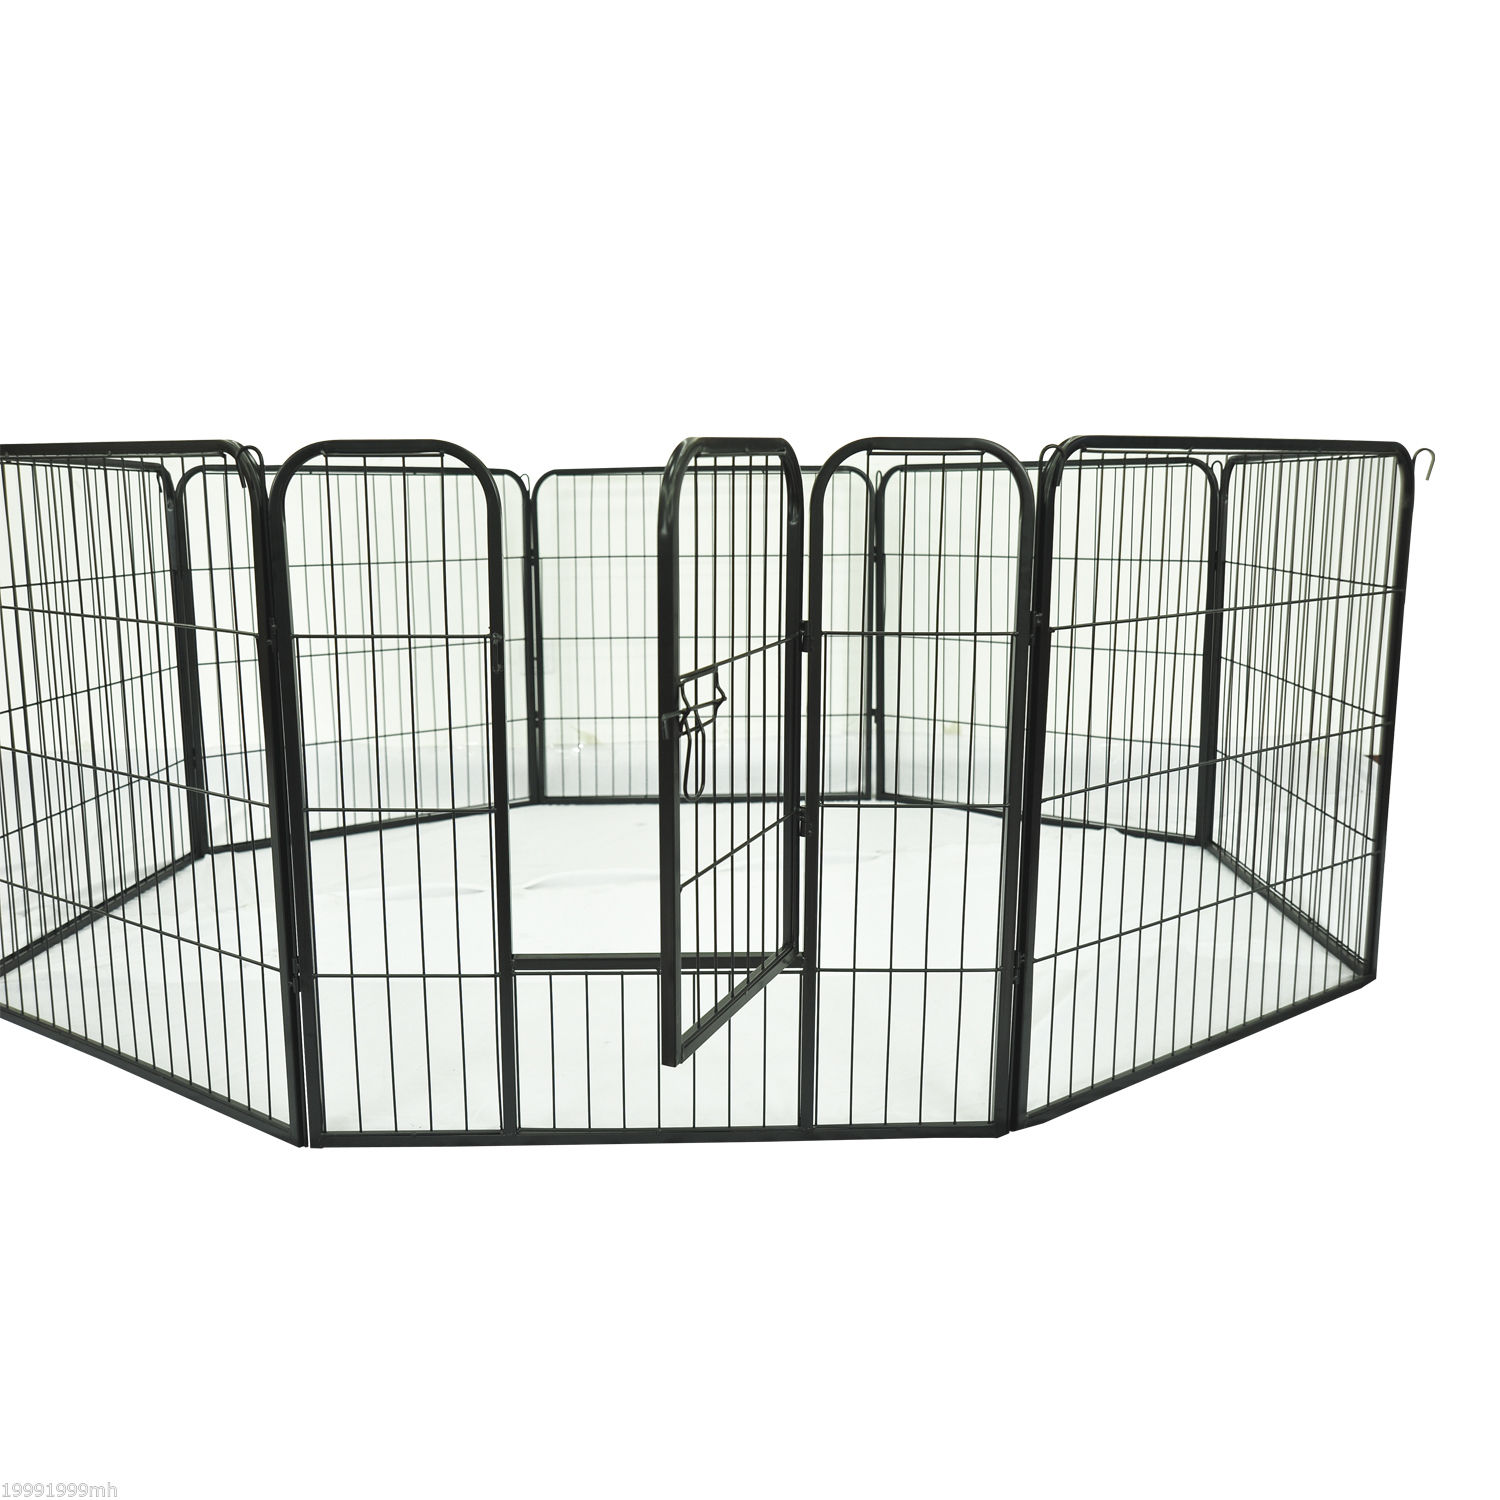 Heavy-Duty-Pet-Playpen-Dog-Exercise-Pen-Cat-Fence-Black-8-Panel-24-034-32-034-39-4-034 thumbnail 13